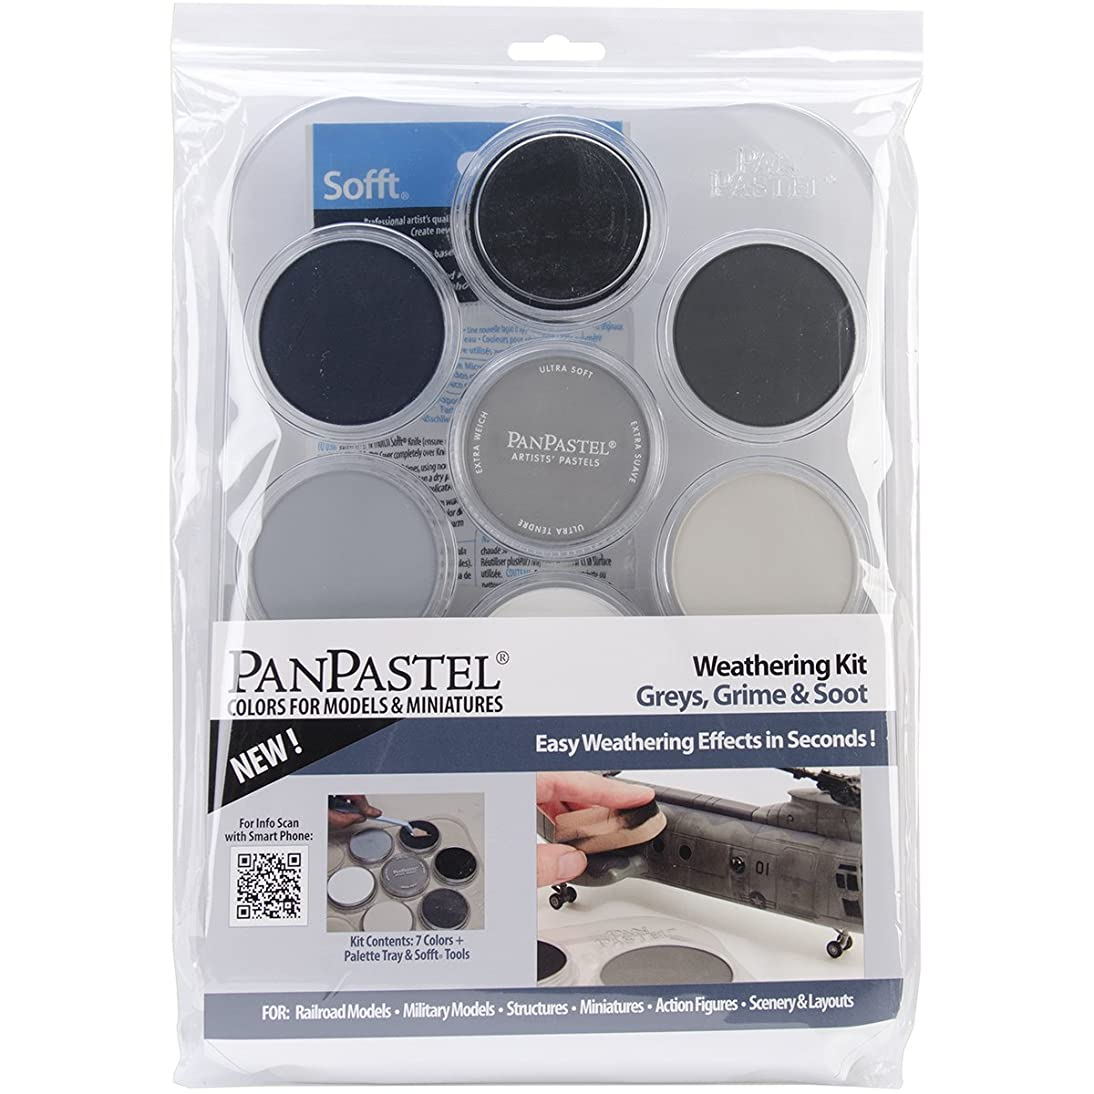 Colorfin PanPastel Ultra Soft Artist Pastel Set, 9ml, Weathering, Grays/Grime/Soot, 7-Pack